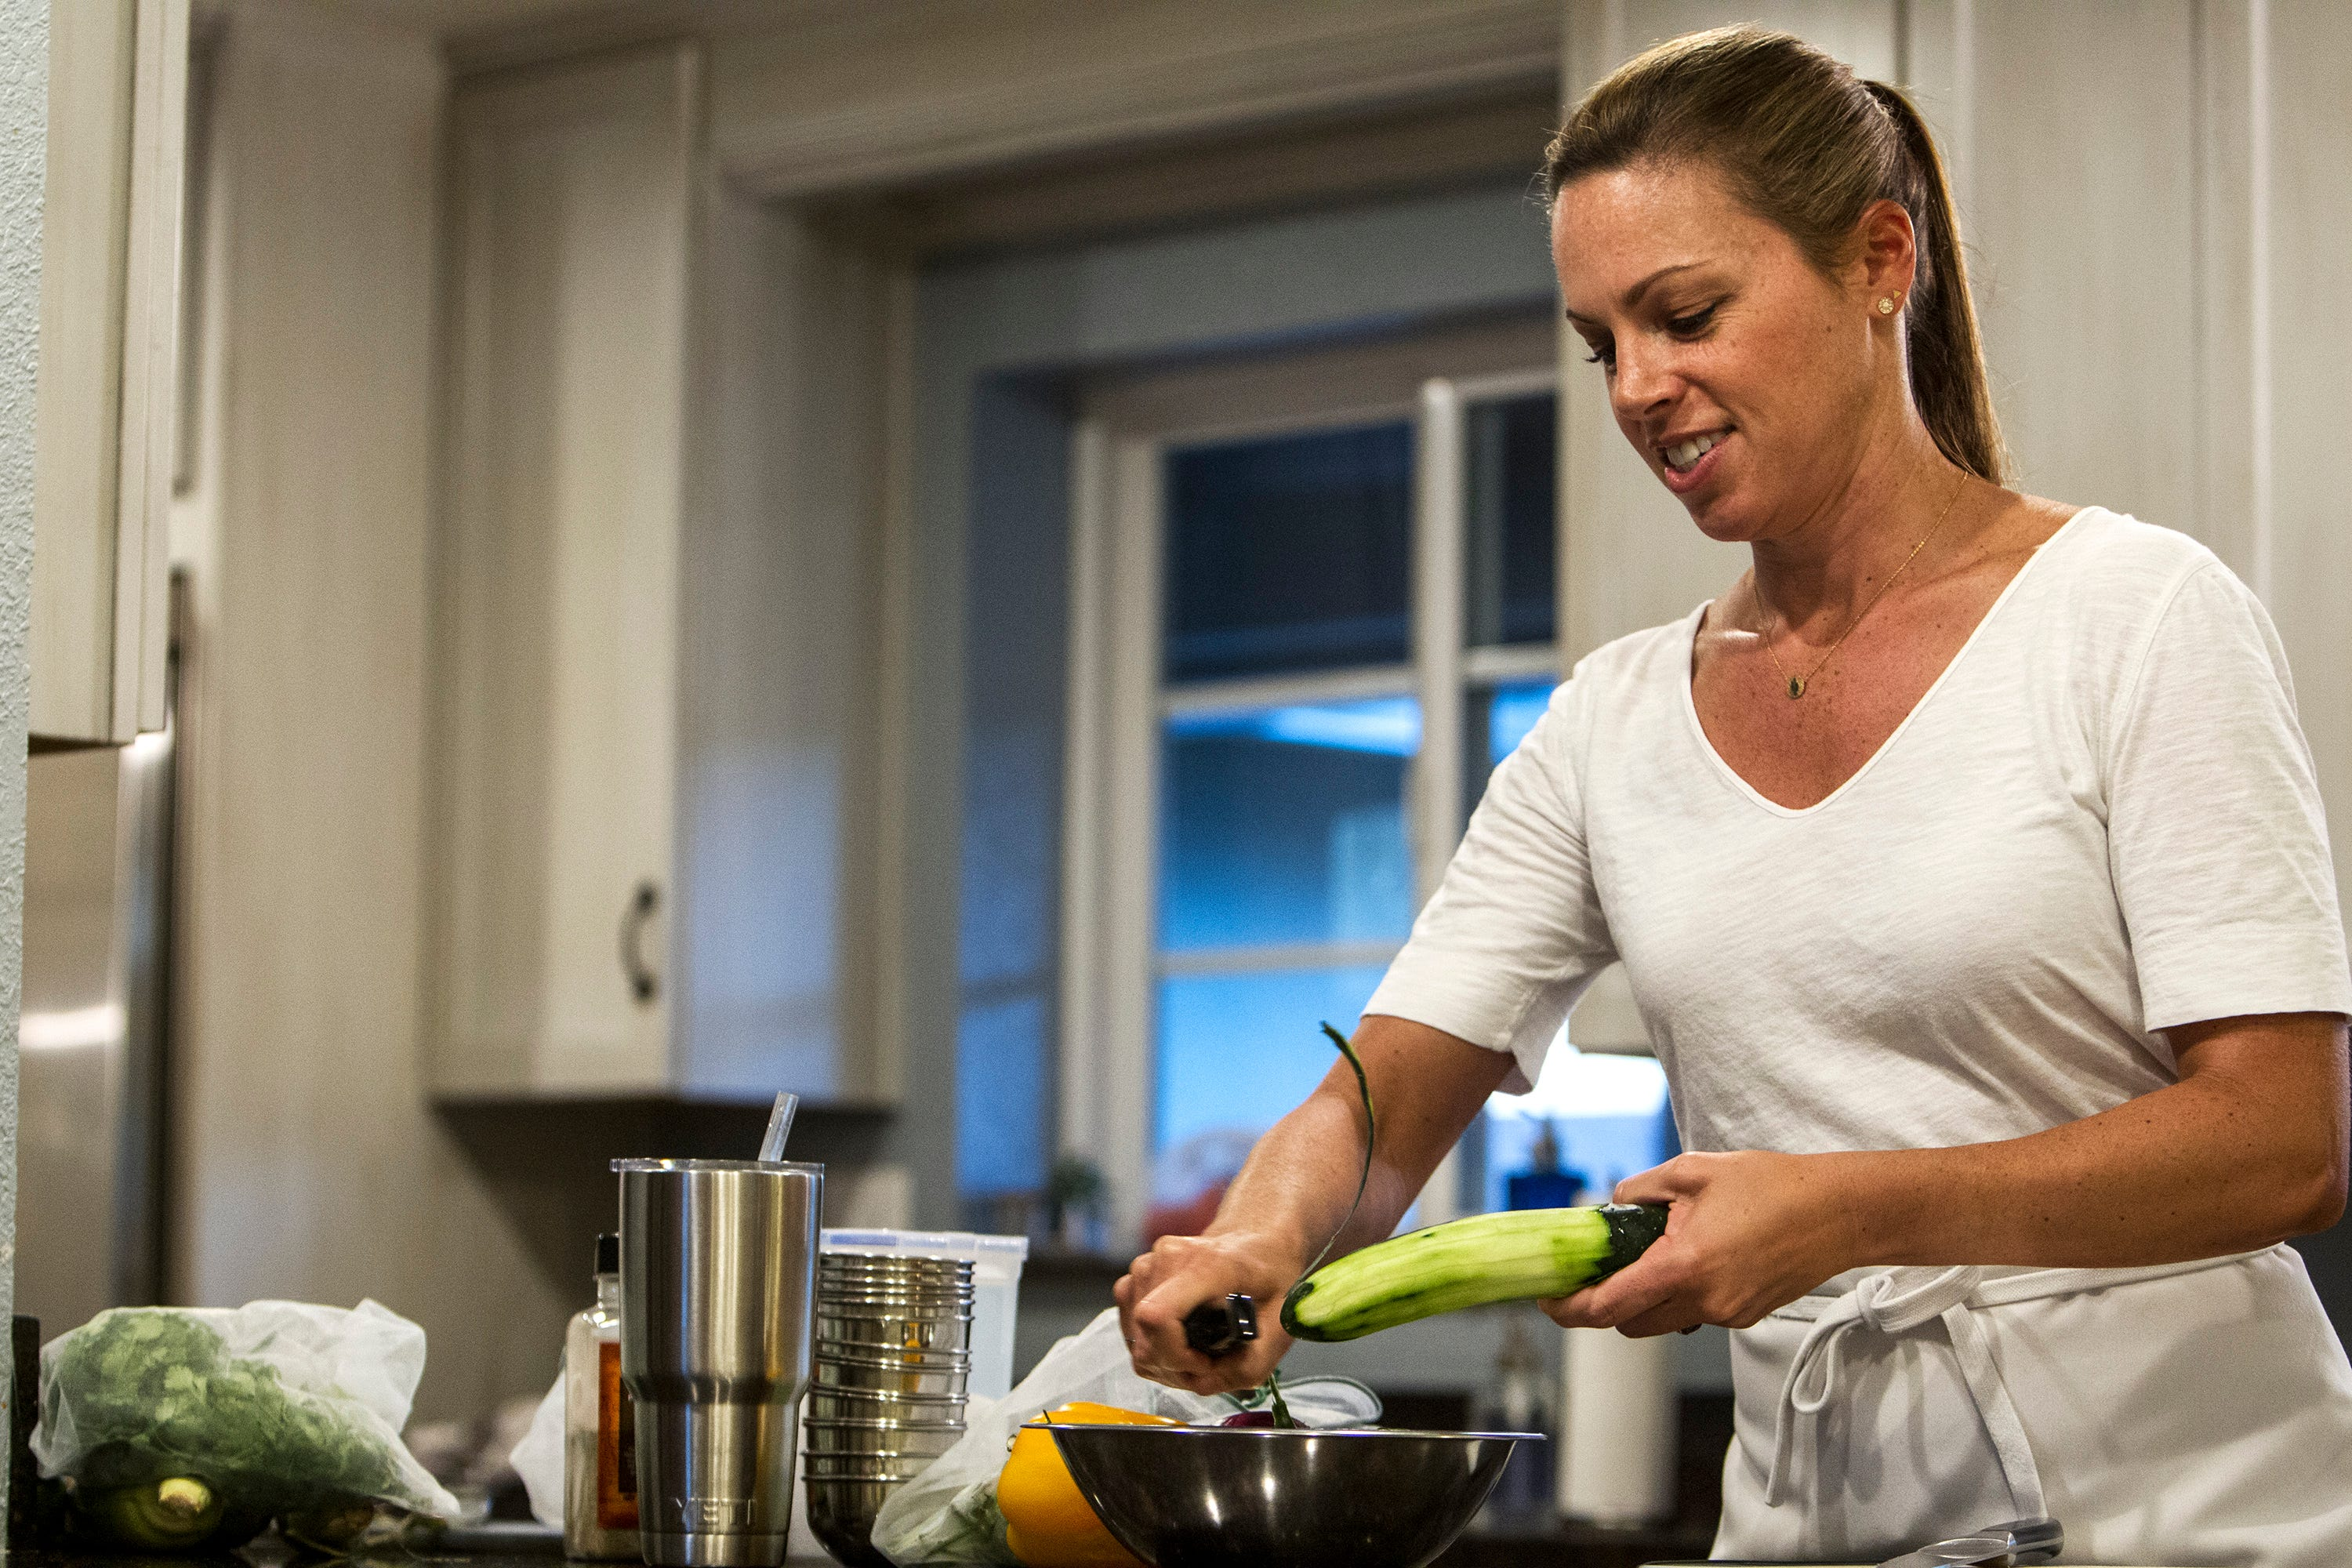 Maggie Norris peels skin off a cucumber during a private class at Whisked Away, a cooking school for home chefs, on Sept. 12, 2017, in Phoenix. Norris has been teaching the classes from her home since 2009.